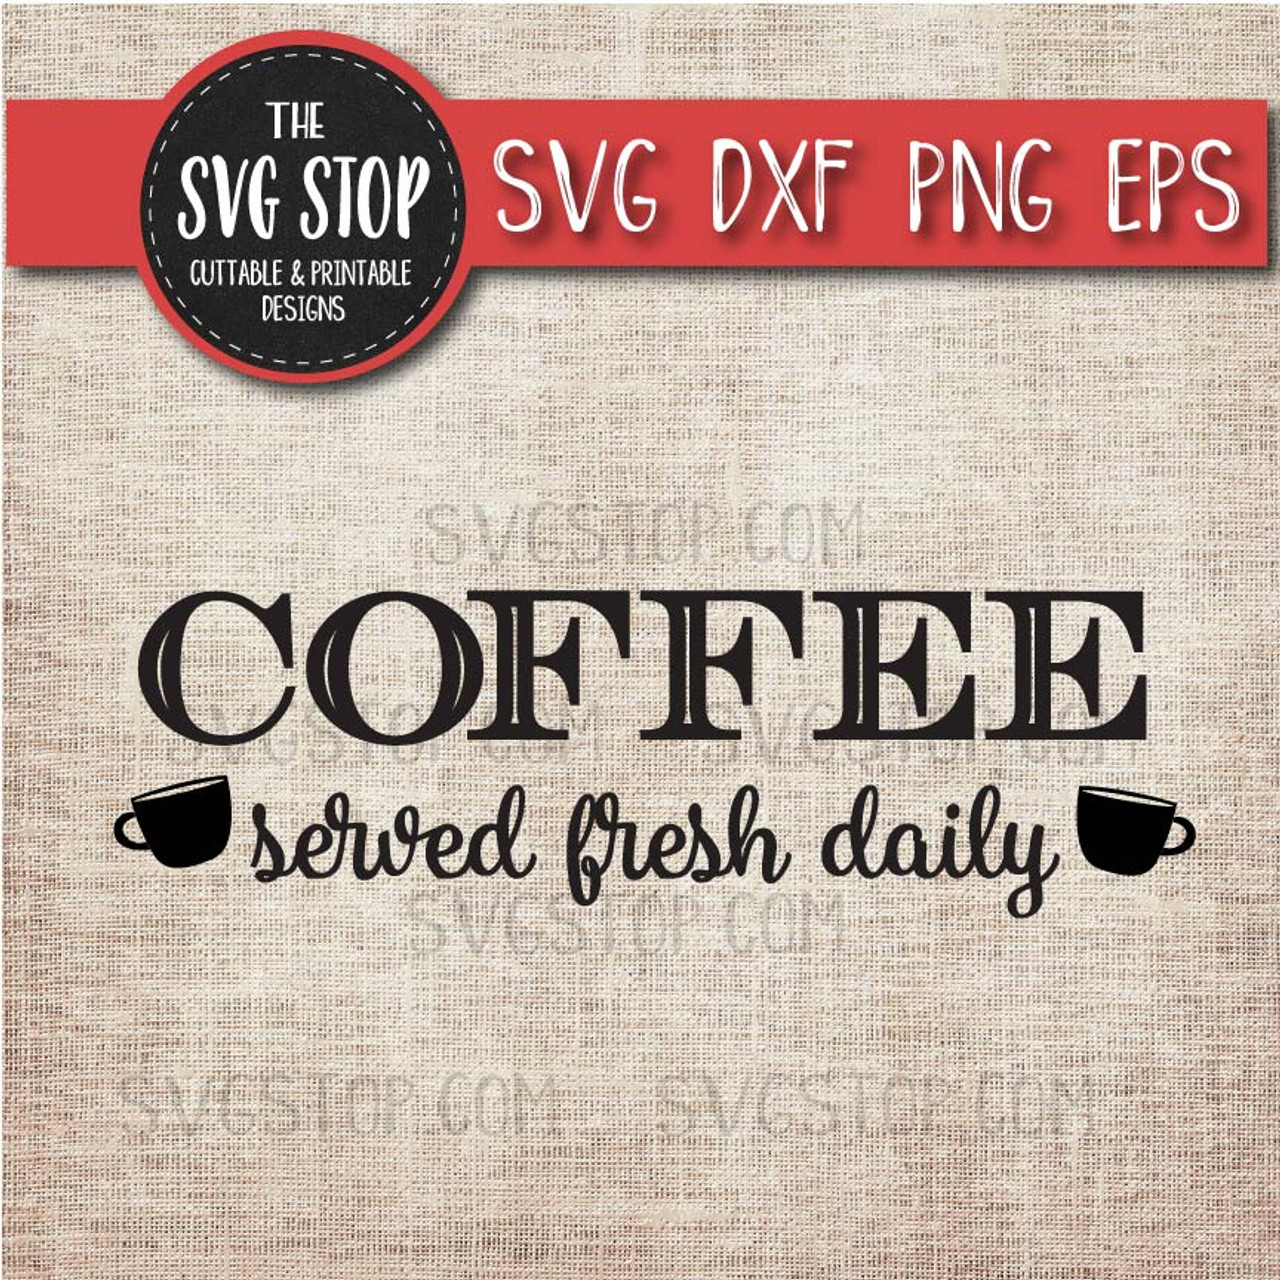 Coffee Served Fresh Daily - Coffee Quotes - Svg Dxf Png Eps - Clipart - Cut  File